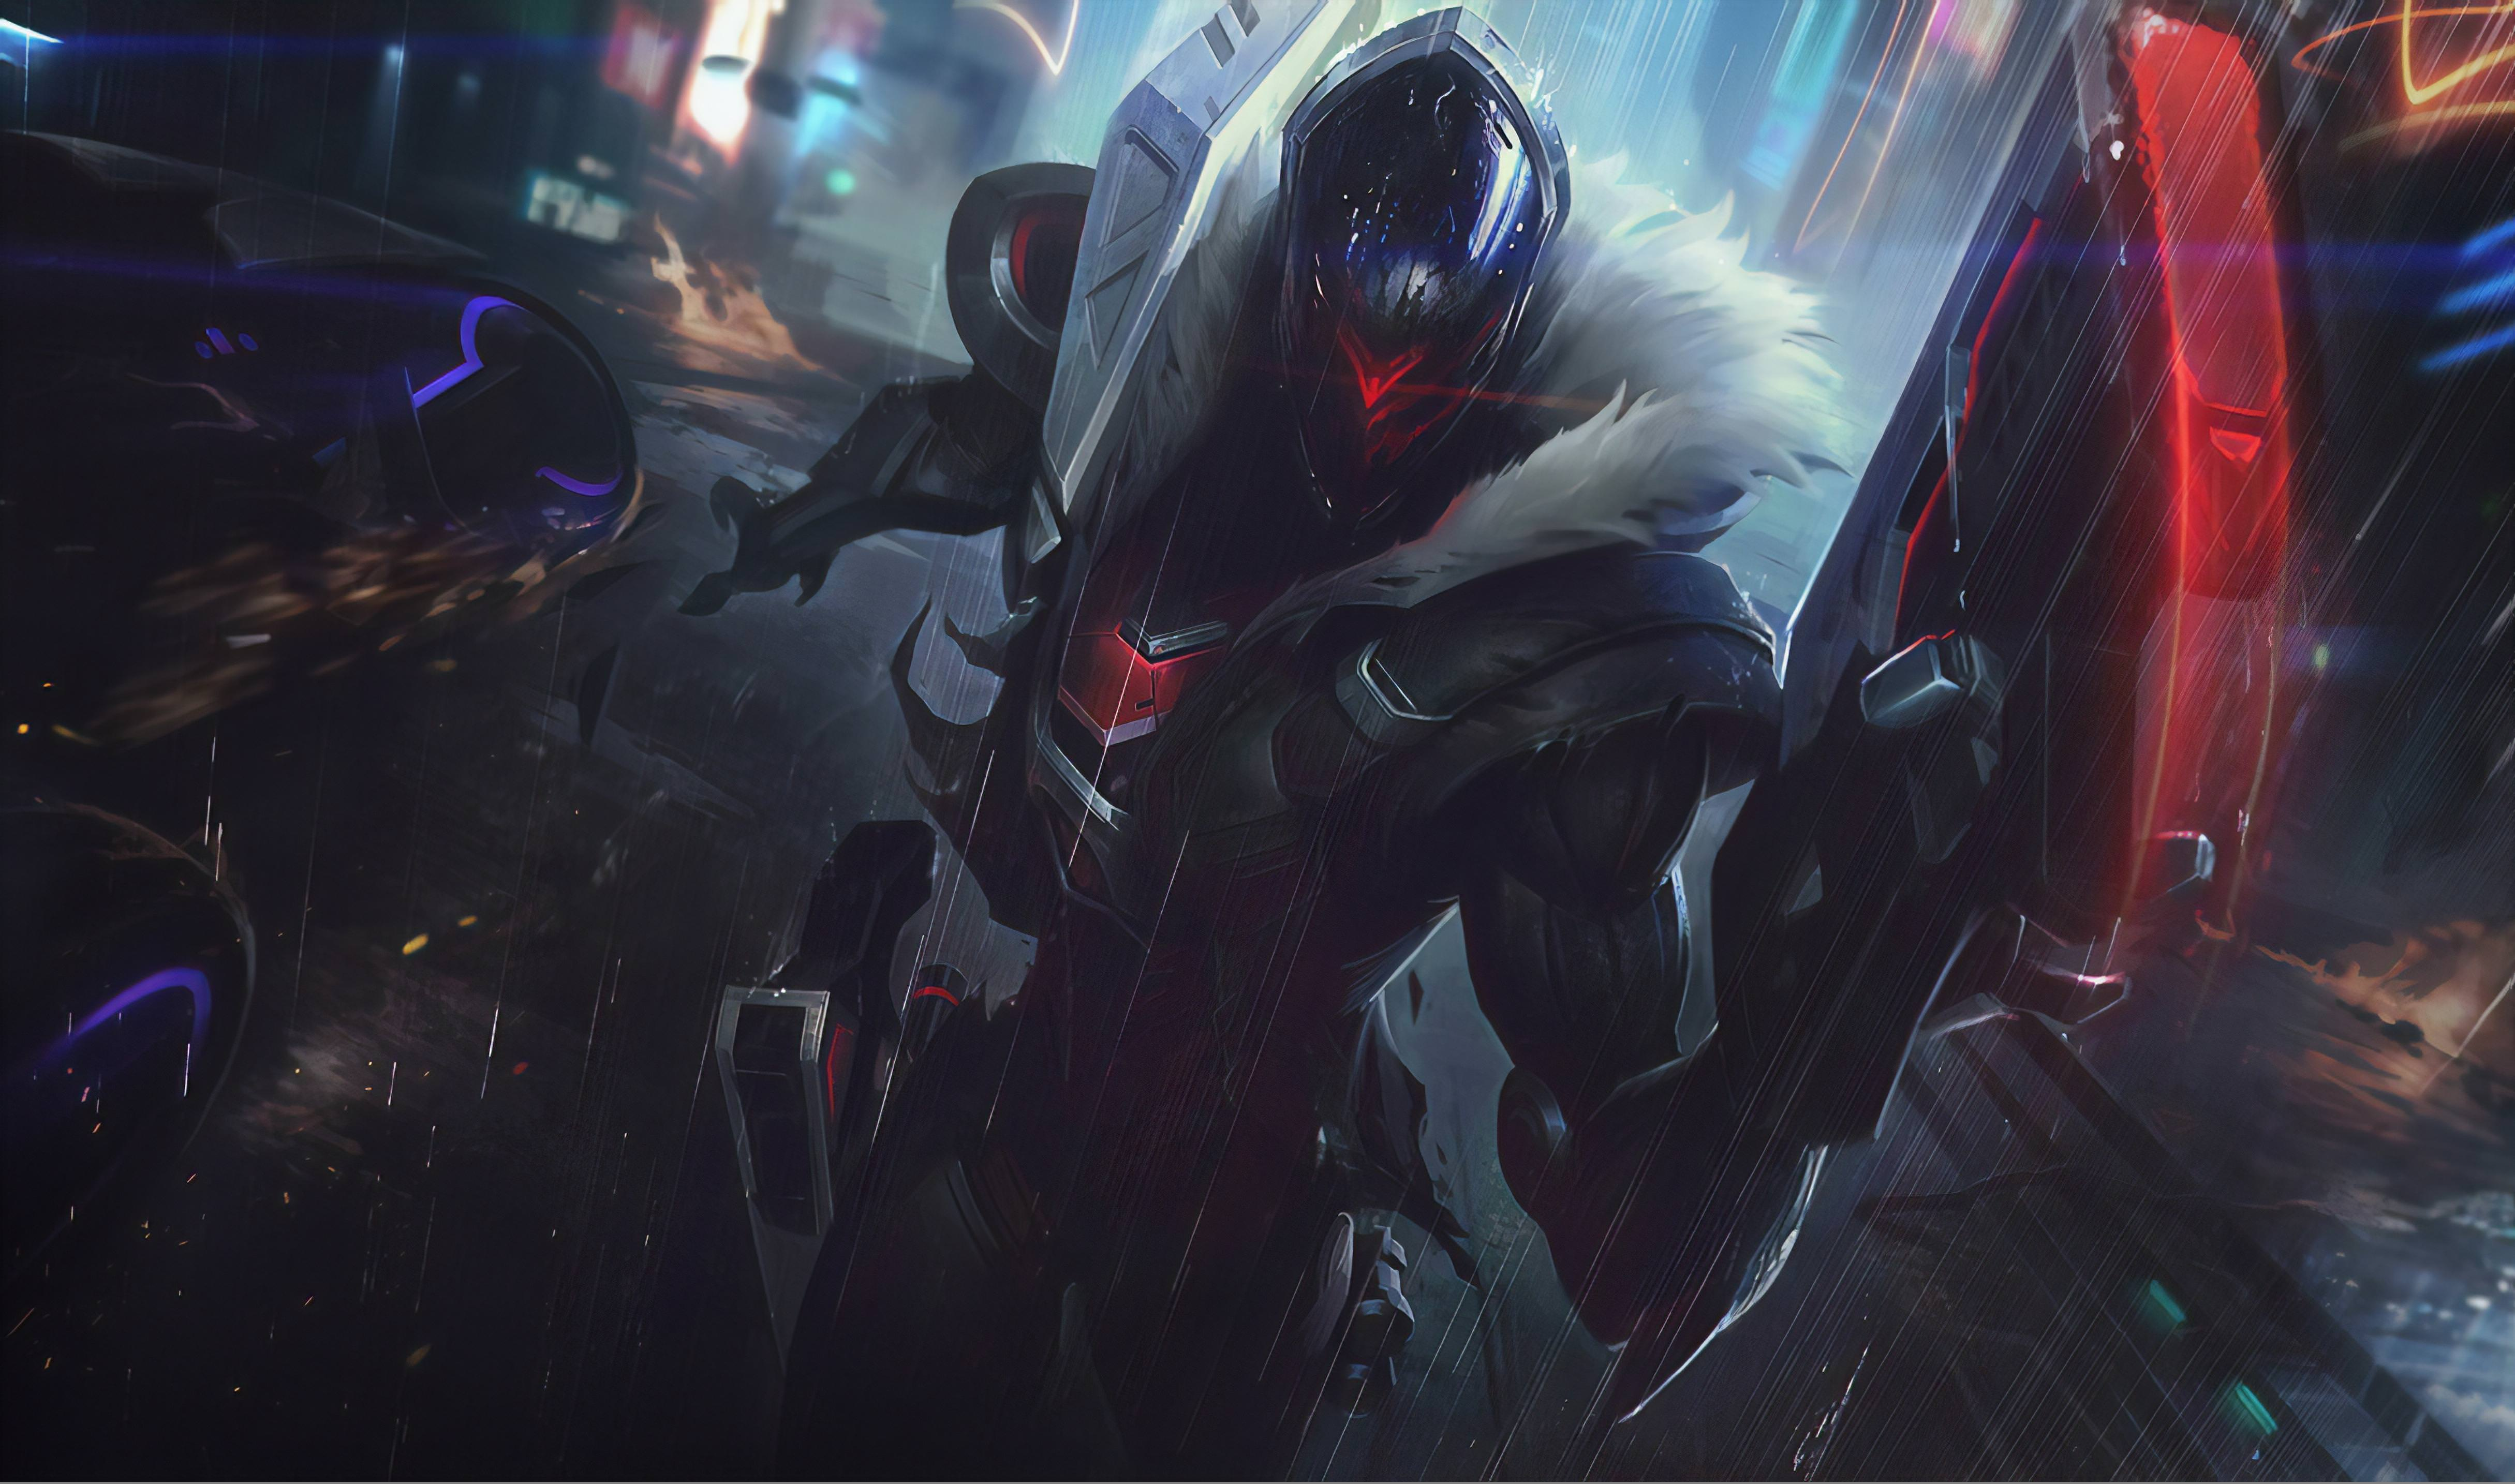 Top-tier ADC players are running the Overheal rune and Relic